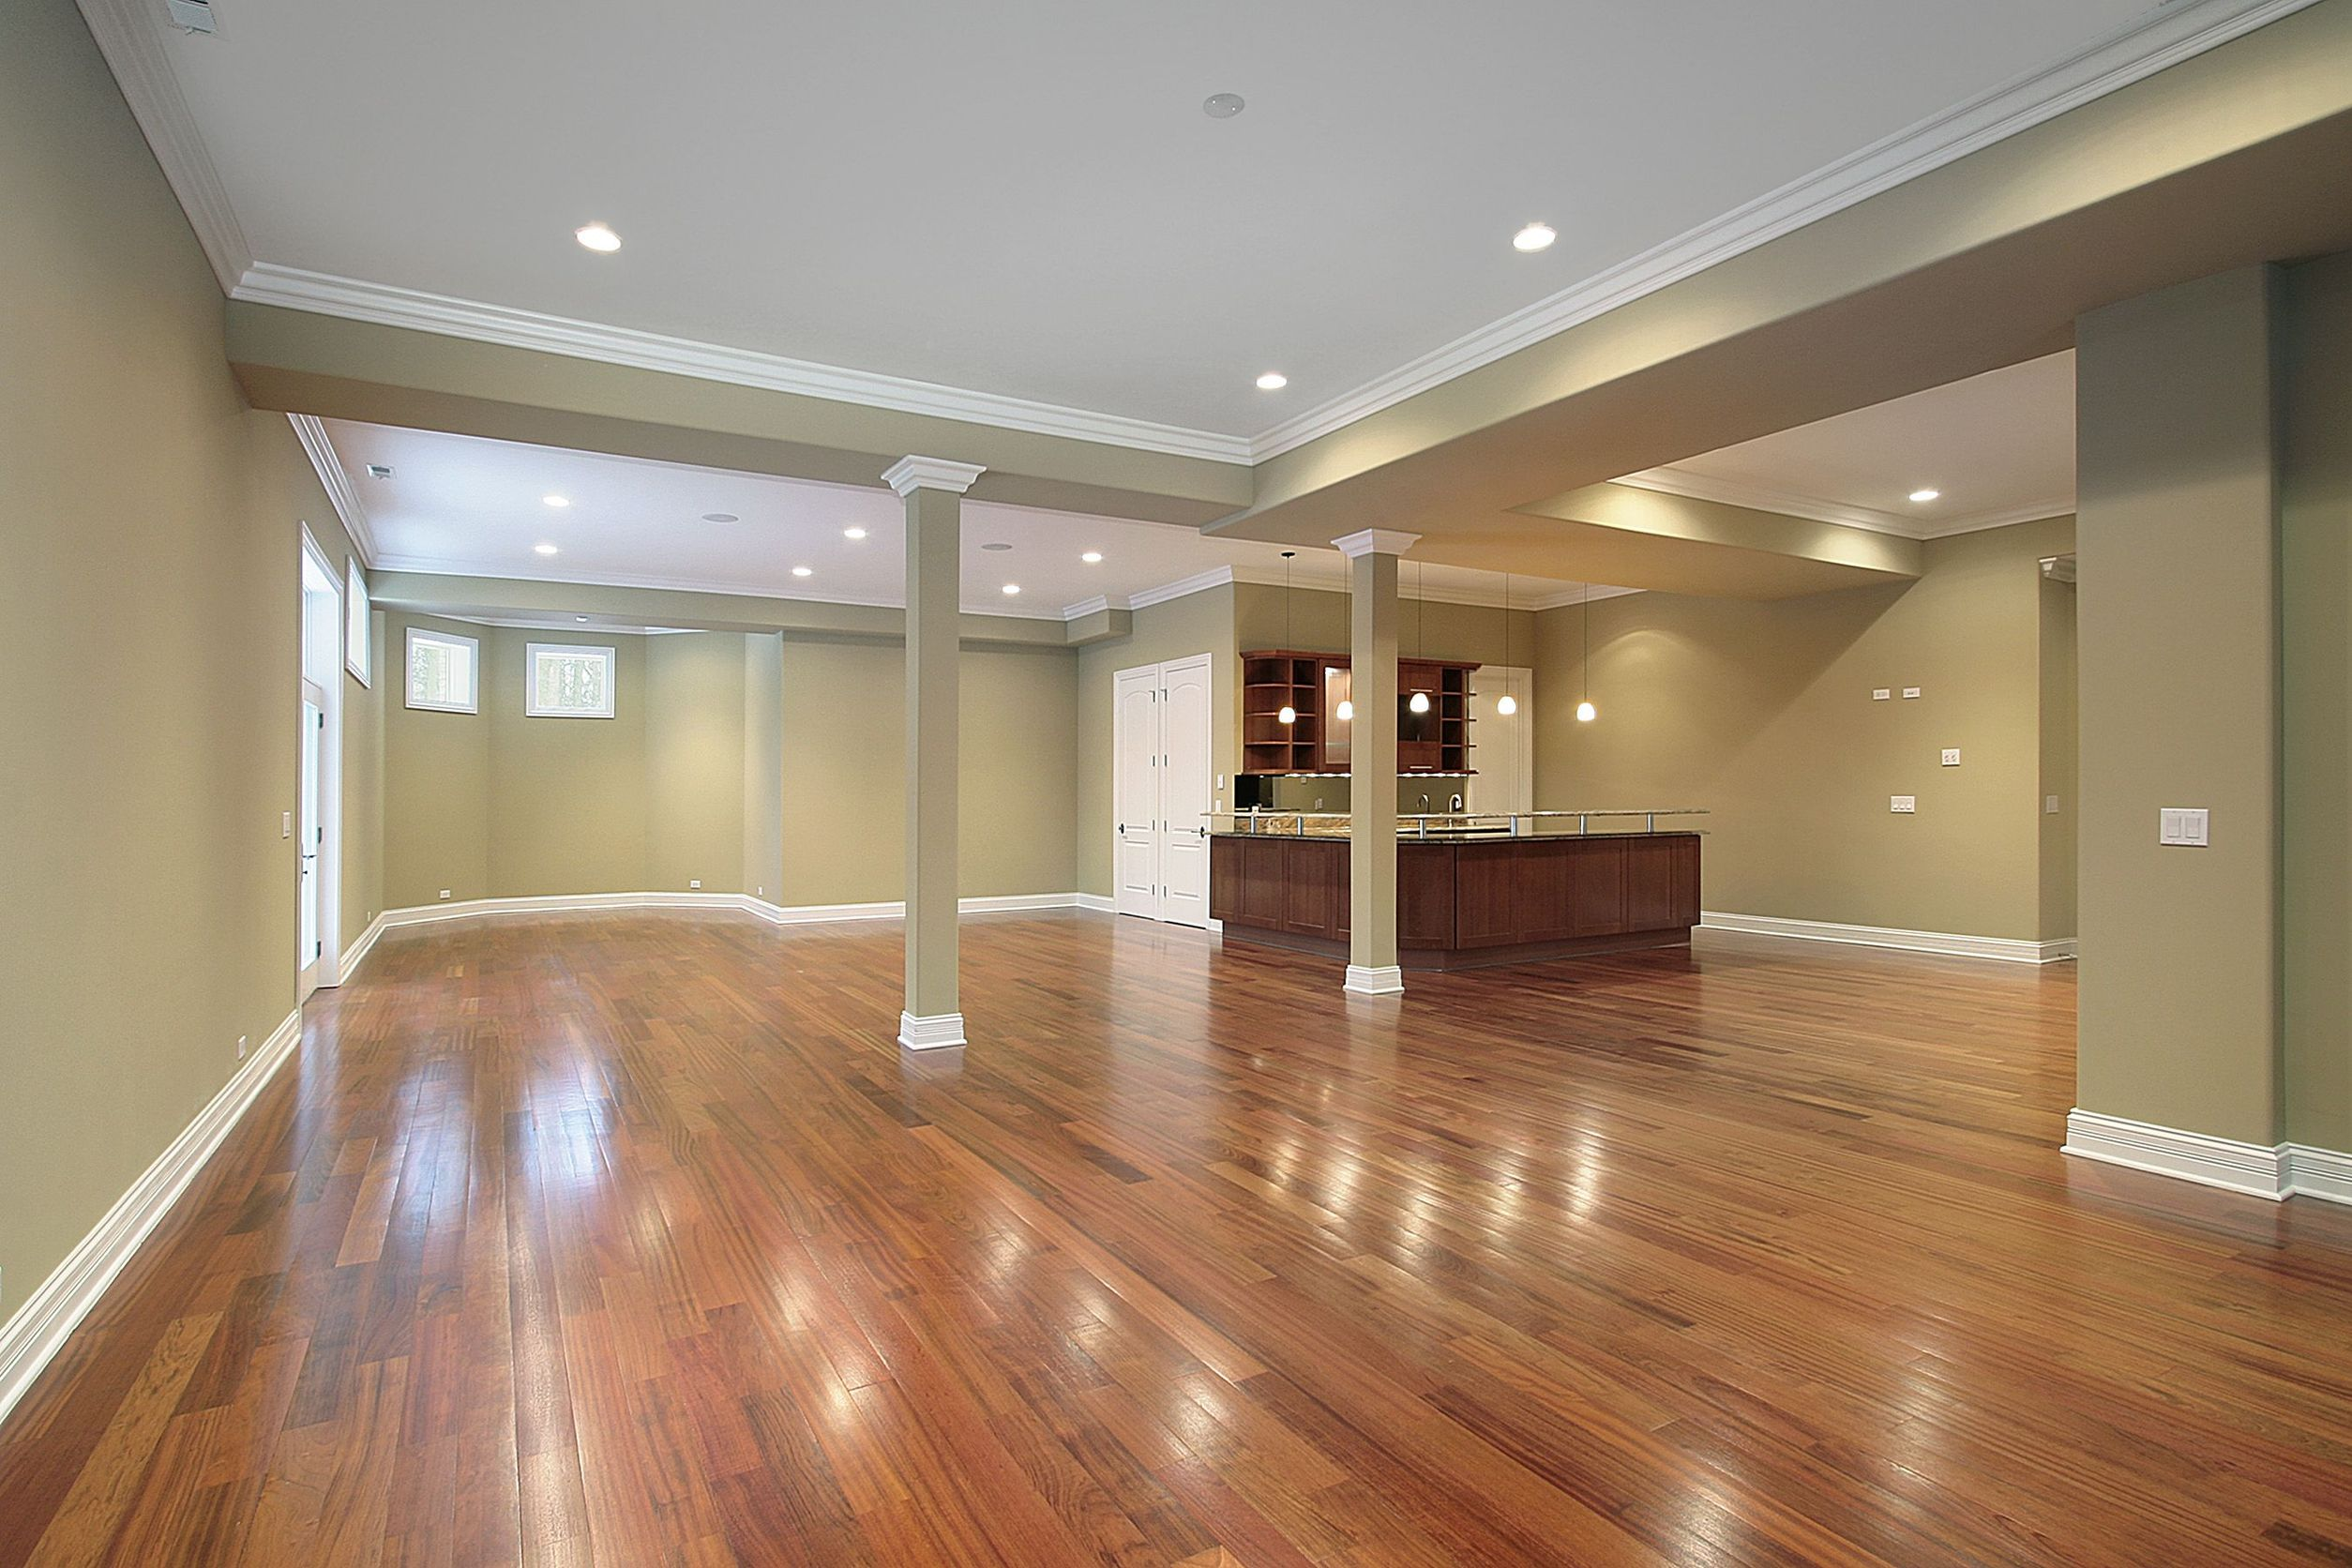 What Are The Best Flooring Options To Use In Your Basement?